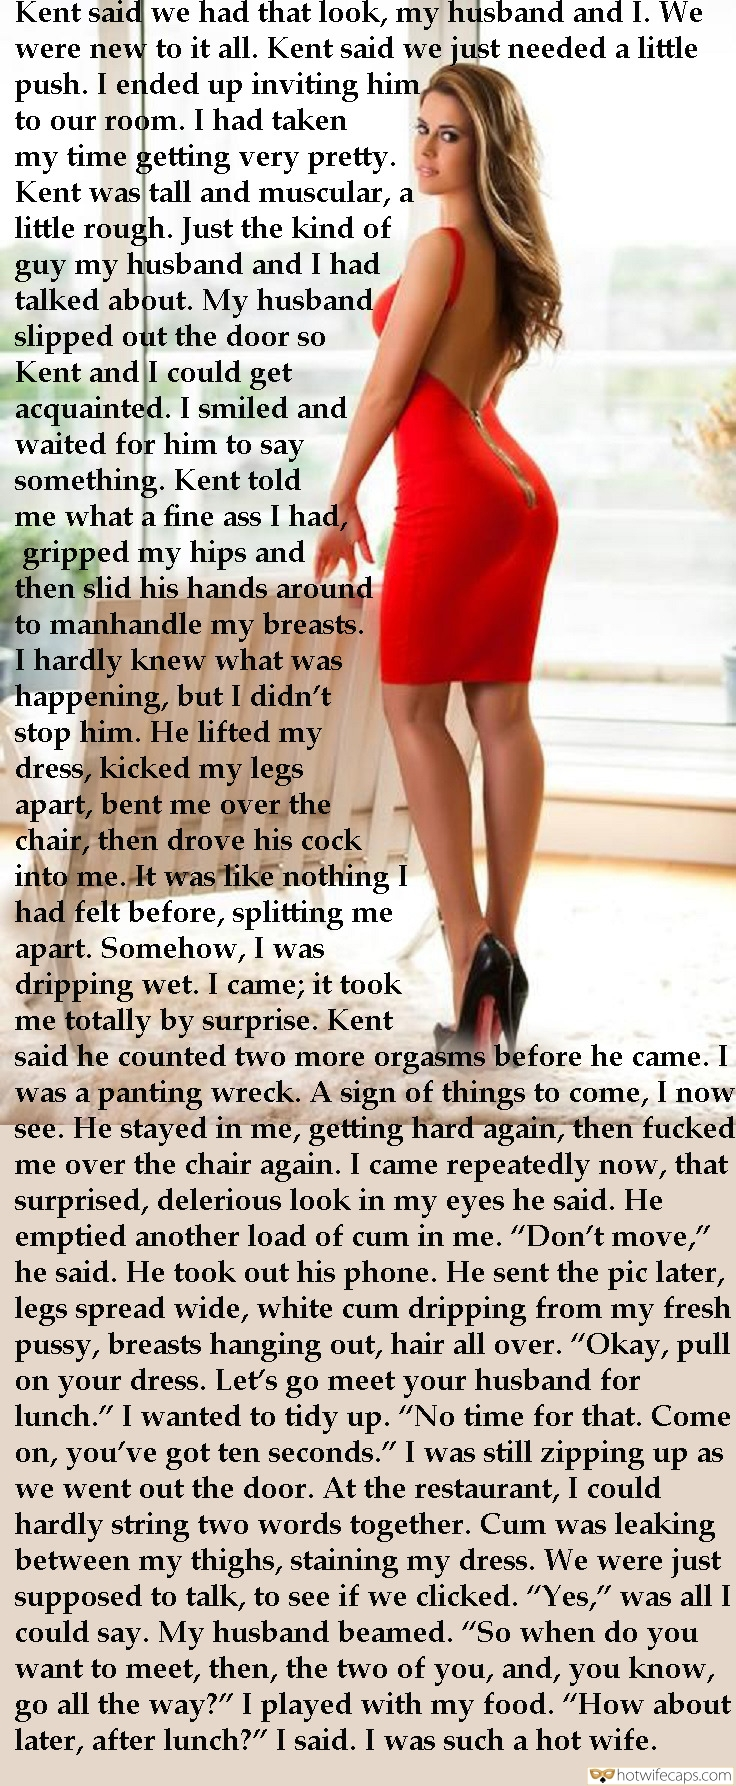 SFW Caps Dirty Talk  hotwife caption: Kent said we had that look, my husband and I. We were new to it all. Kent said we just needed a little push. I ended up inviting him, to our room. I had taken my time getting very pretty....